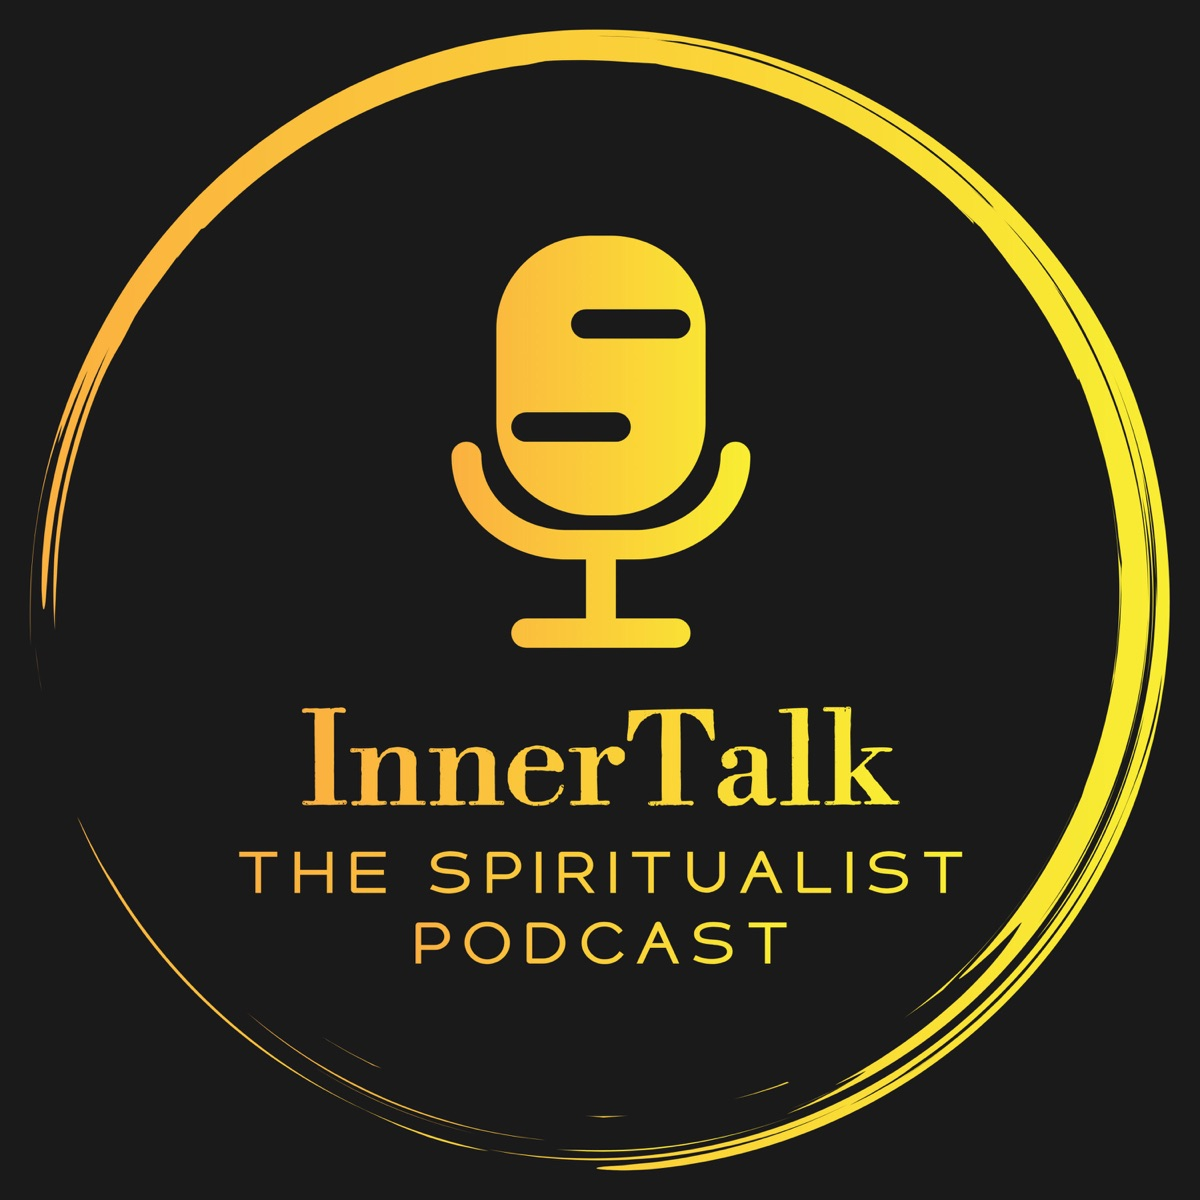 The Spiritualist - InnerTalk Podcast